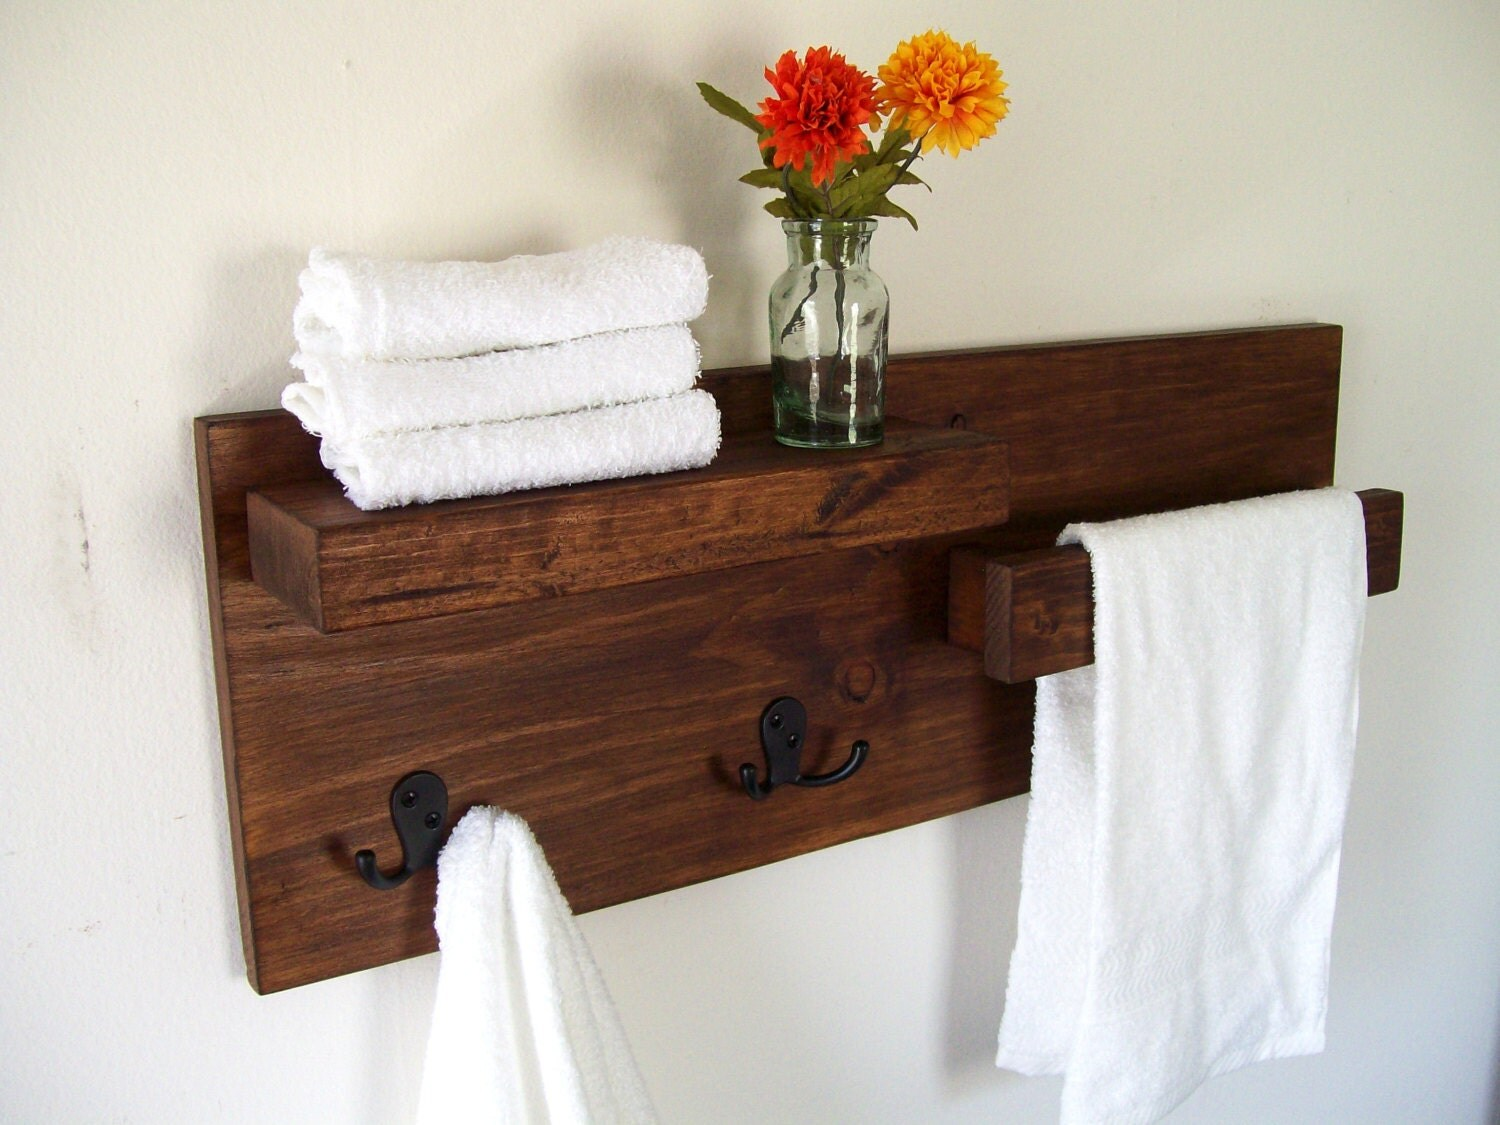 bathroom towel rack towel bar towel hook towel holder bathroom. Black Bedroom Furniture Sets. Home Design Ideas